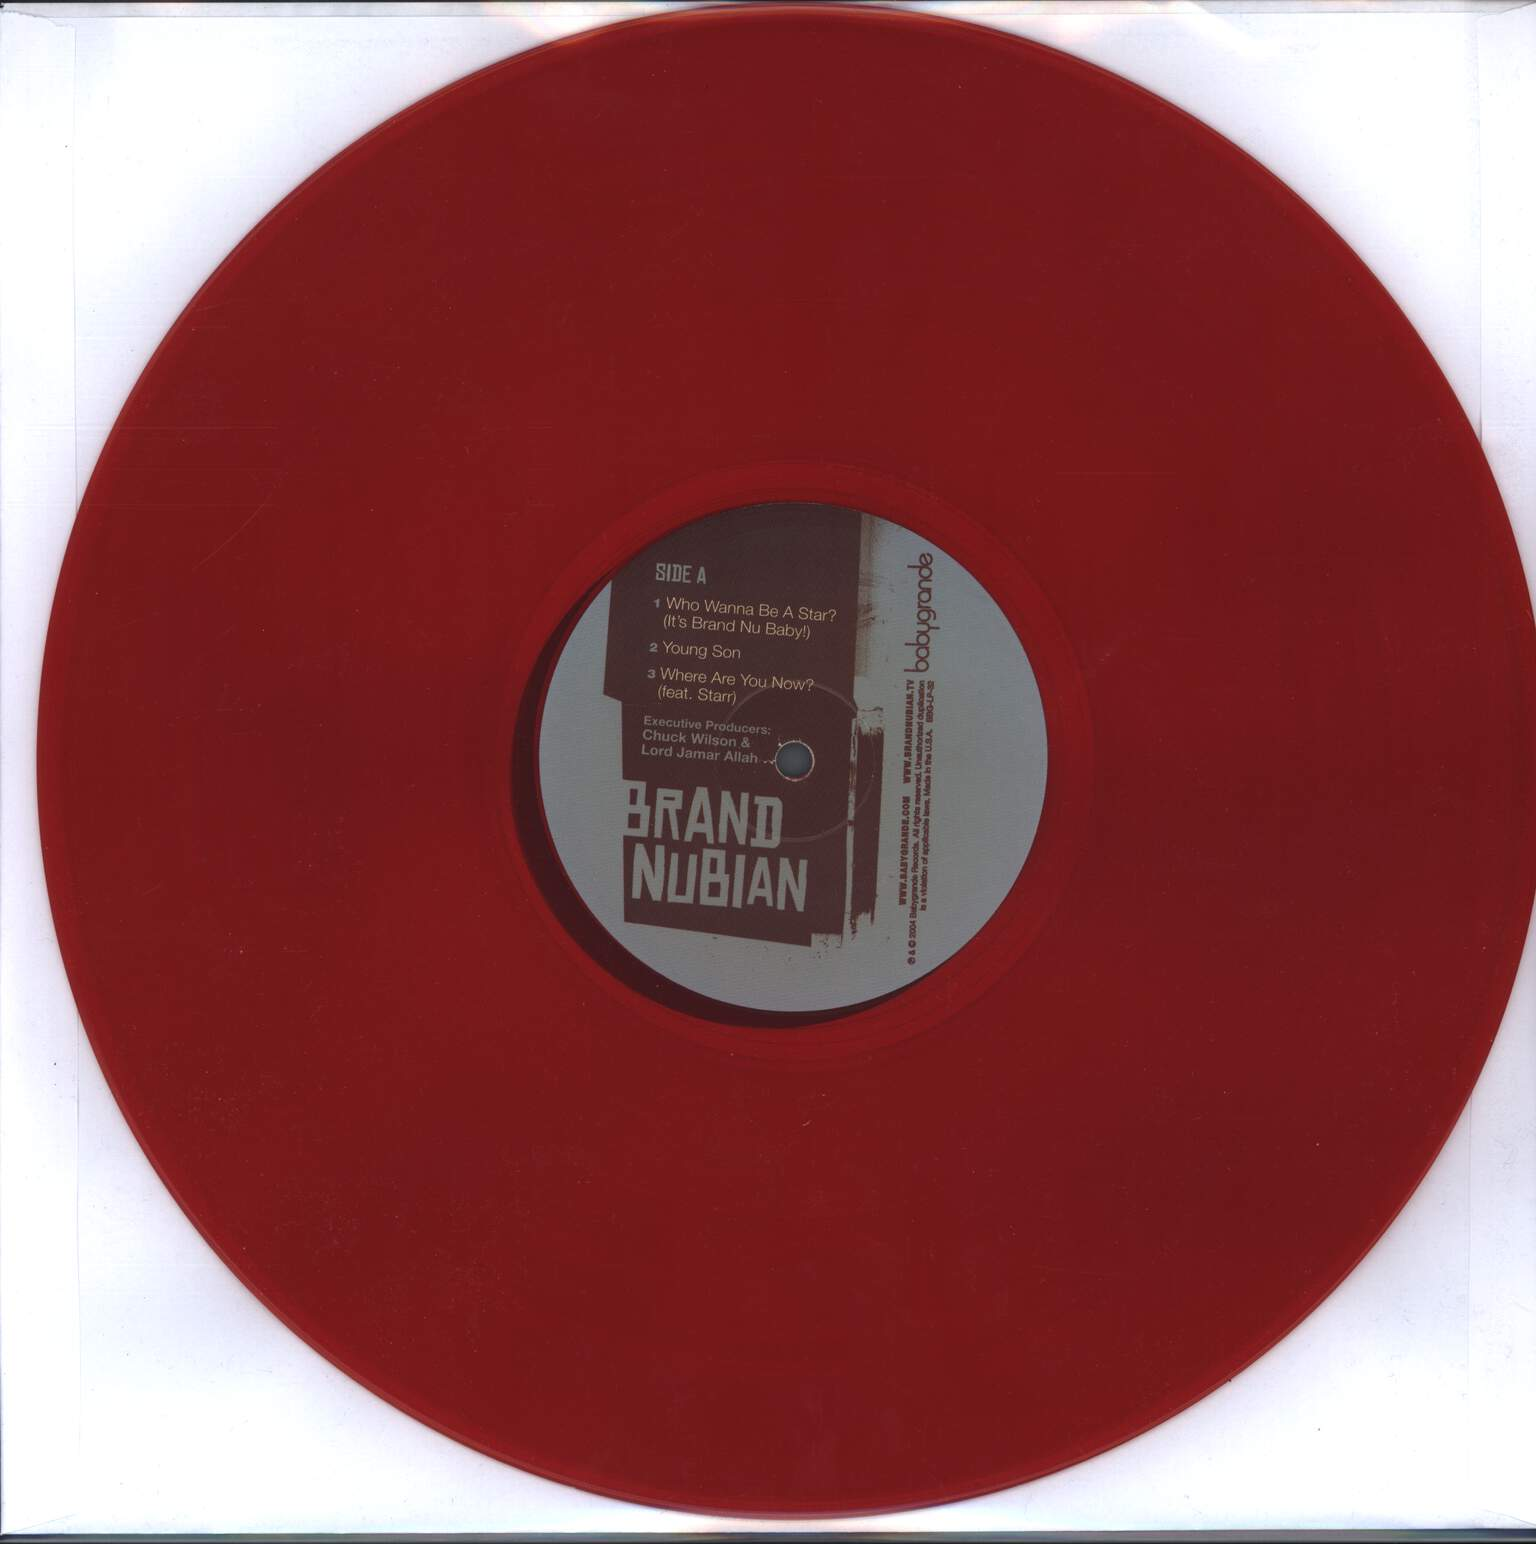 Brand Nubian: Fire In The Hole, LP (Vinyl)